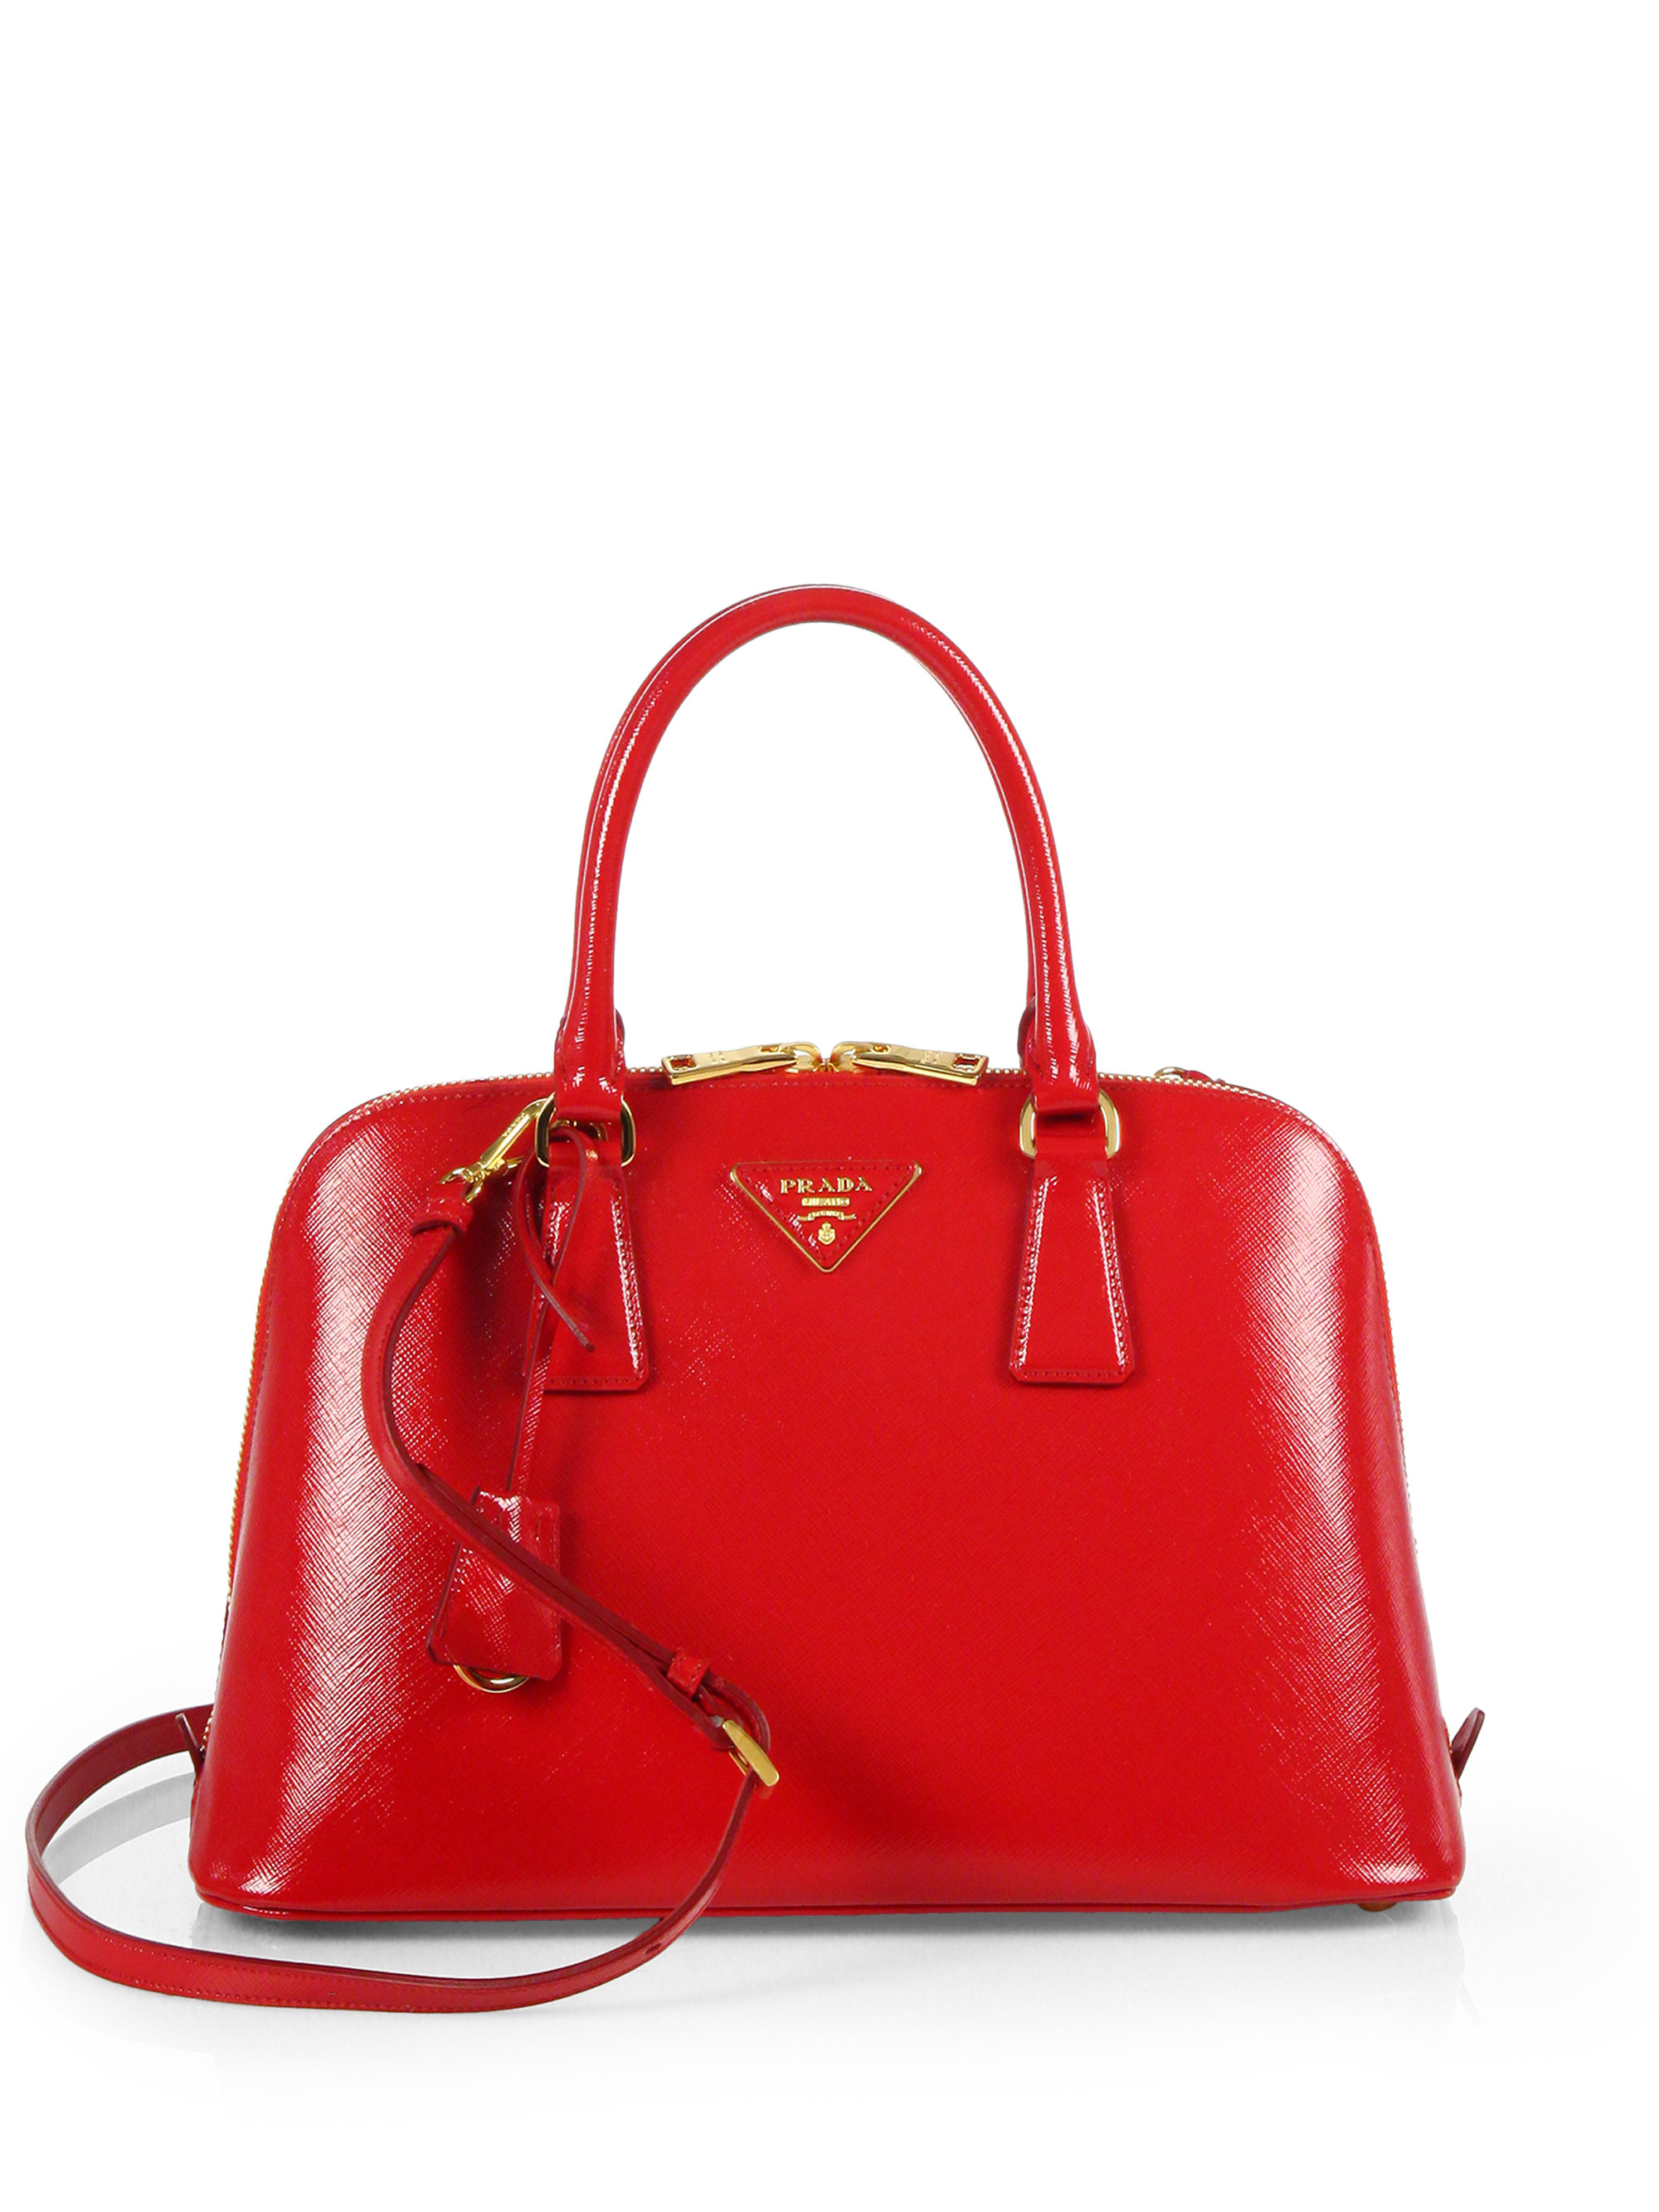 Prada Saffiano Vernice Small Promenade Bag in Red (ROSSO-RED) | Lyst